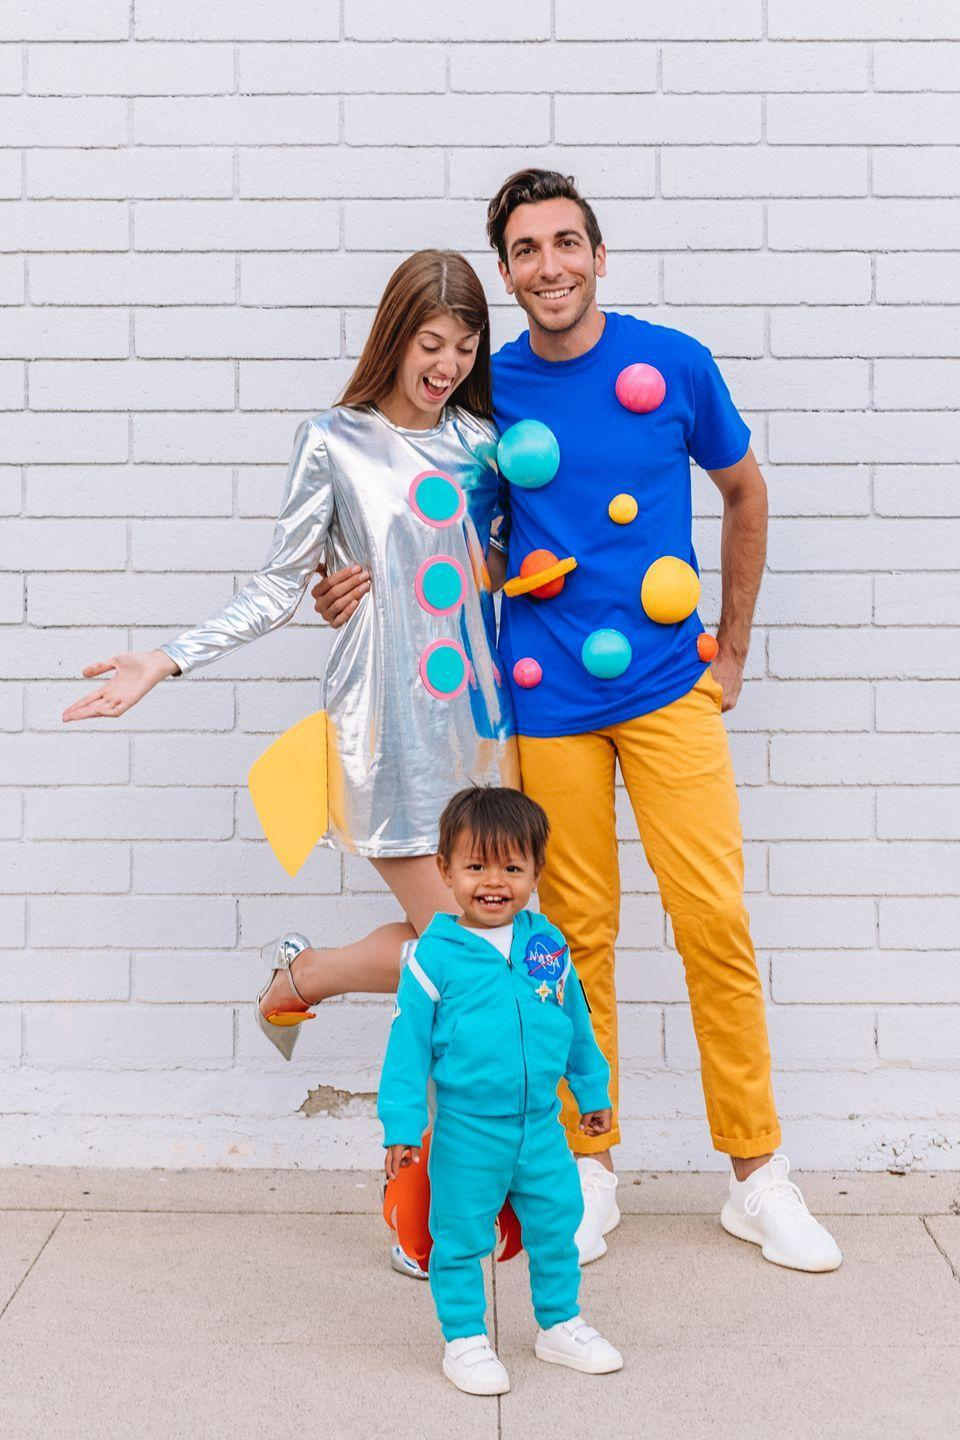 "<p>If you want your kiddo to be the star of the show — but still want to dress up as a family — then try this space-inspired group costume. You can go as the galaxy, a spaceship, and an astronaut, or the galaxy, a spaceship, and an alien. </p><p><em><a href=""https://studiodiy.com/diy-space-family-costume/"" rel=""nofollow noopener"" target=""_blank"" data-ylk=""slk:Get the tutorial at Studio DIY"" class=""link rapid-noclick-resp"">Get the tutorial at Studio DIY </a></em><del><em><a href=""https://studiodiy.com/diy-space-family-costume/"" rel=""nofollow noopener"" target=""_blank"" data-ylk=""slk:»"" class=""link rapid-noclick-resp"">»</a></em></del></p>"